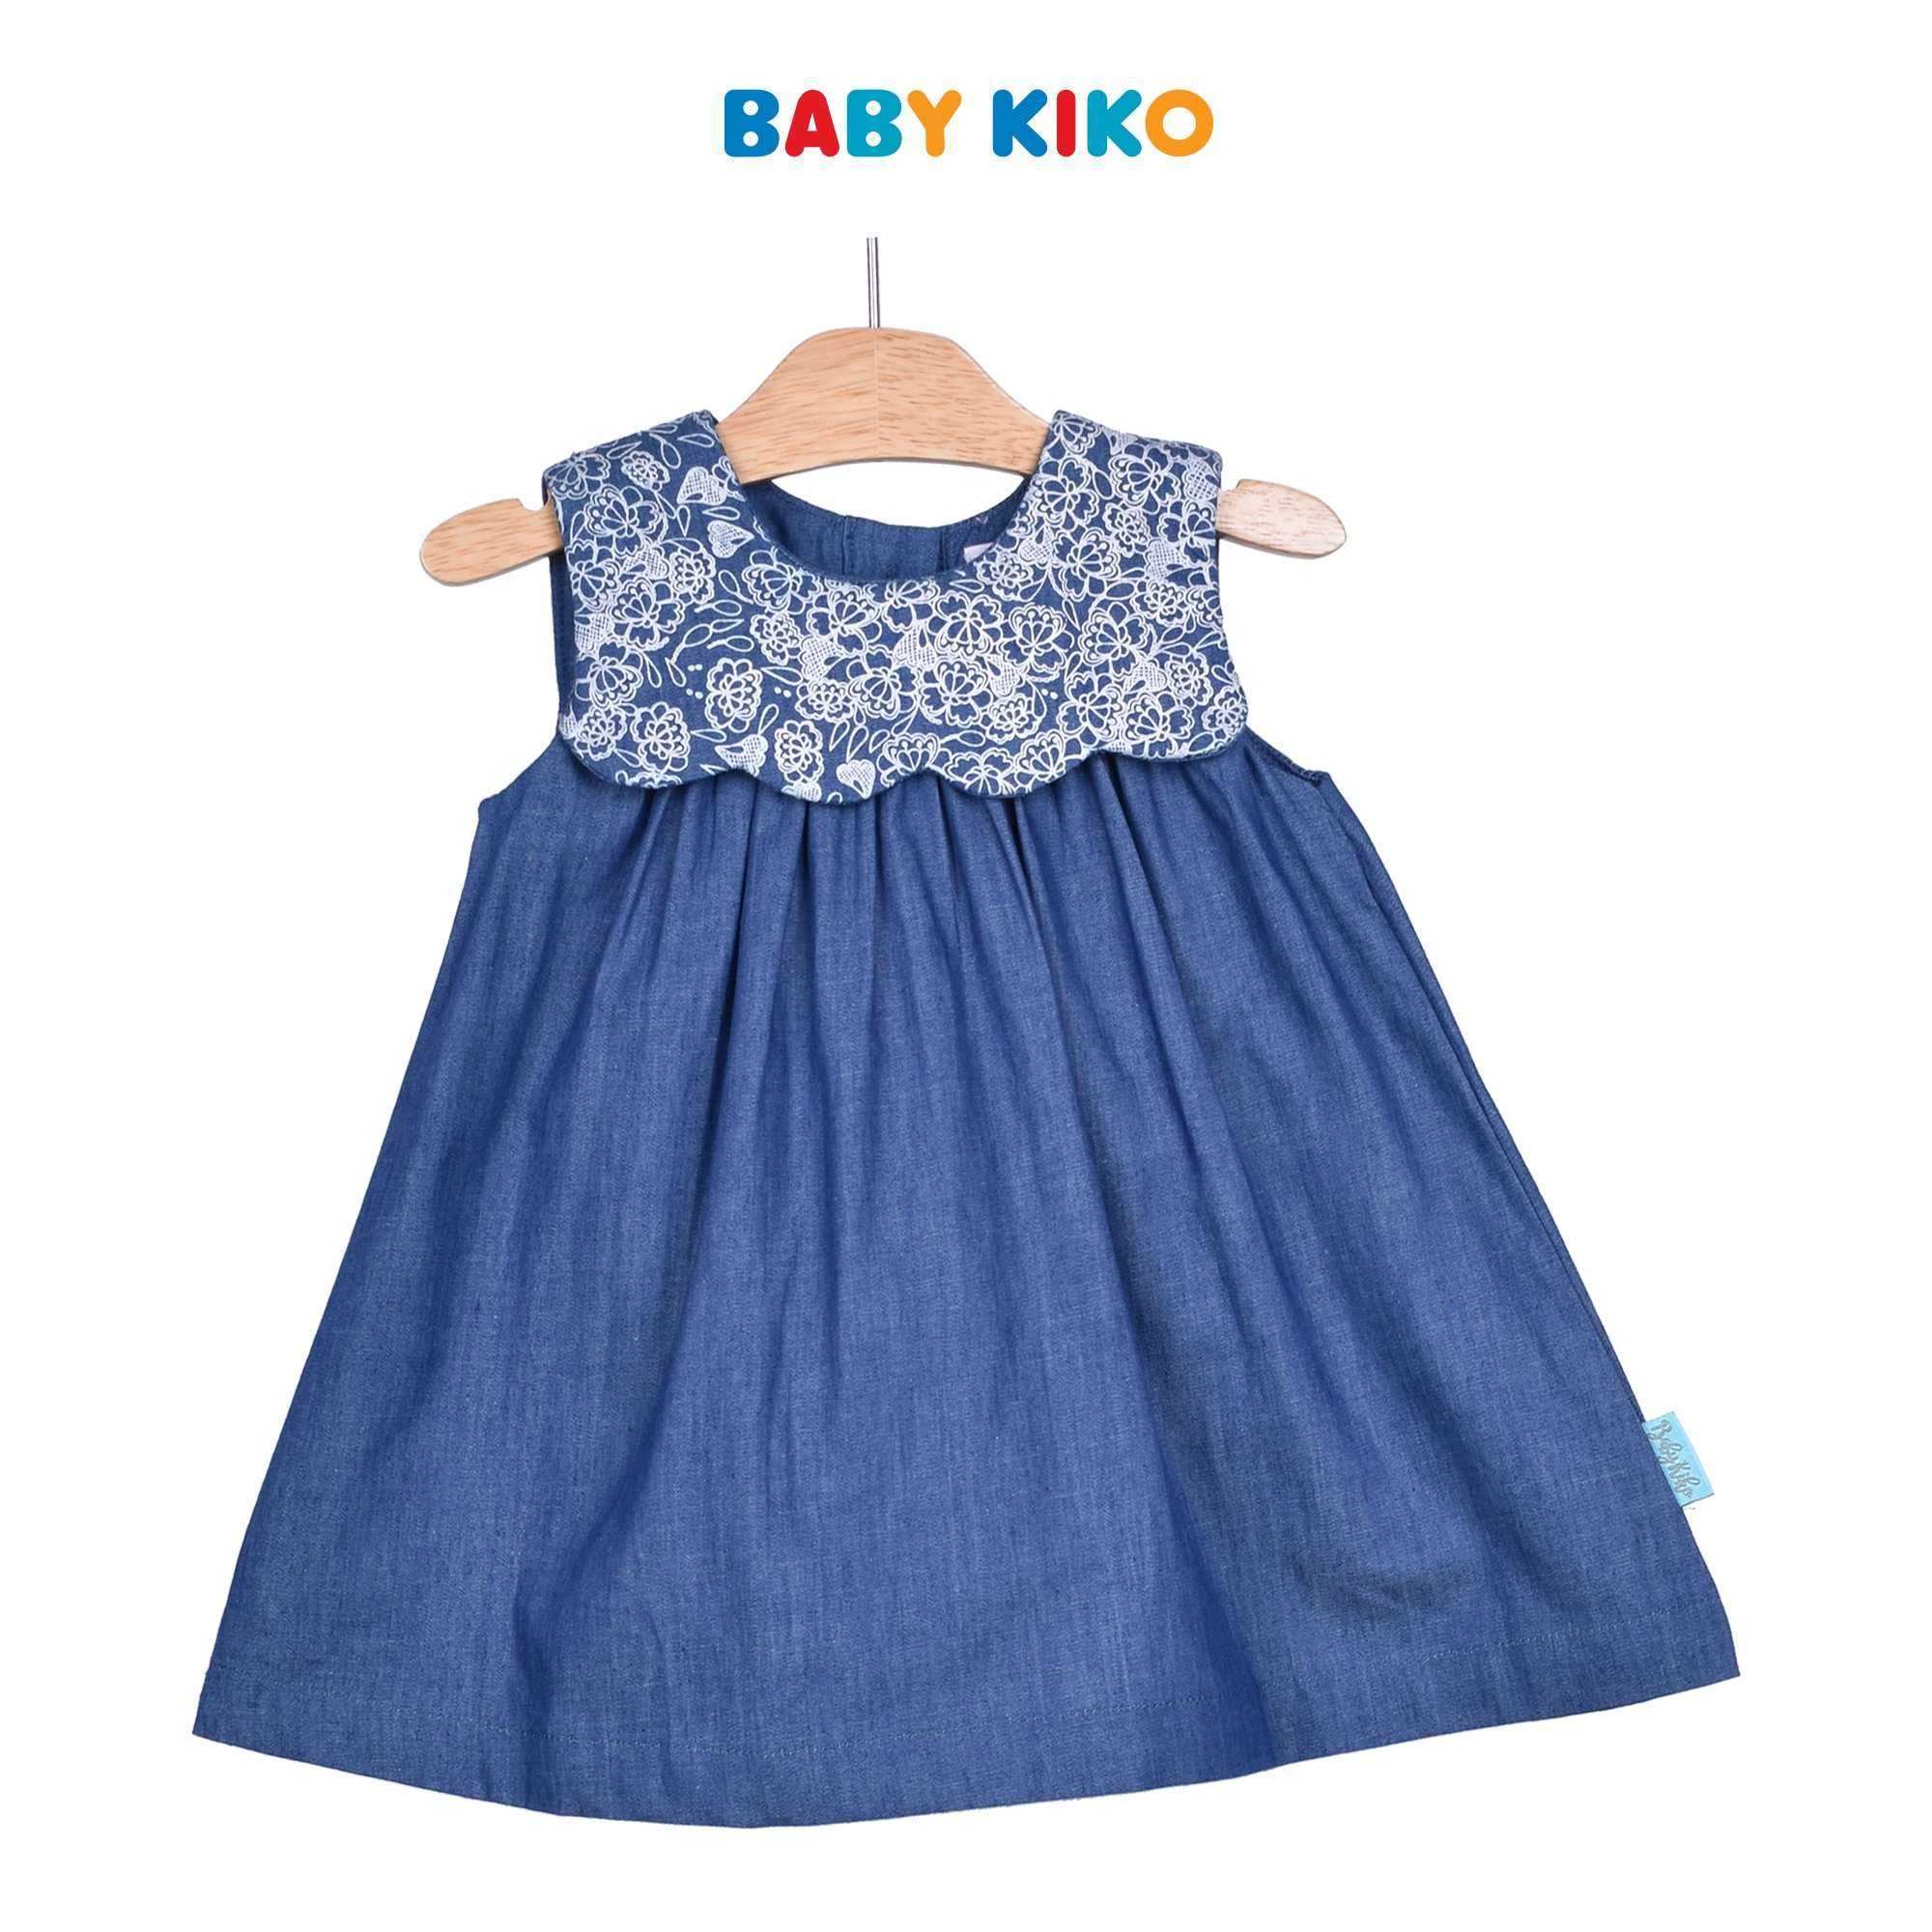 Baby KIKO Baby Girl Sleeveless Dress - Blue 310184-311 : Buy Baby KIKO online at CMG.MY